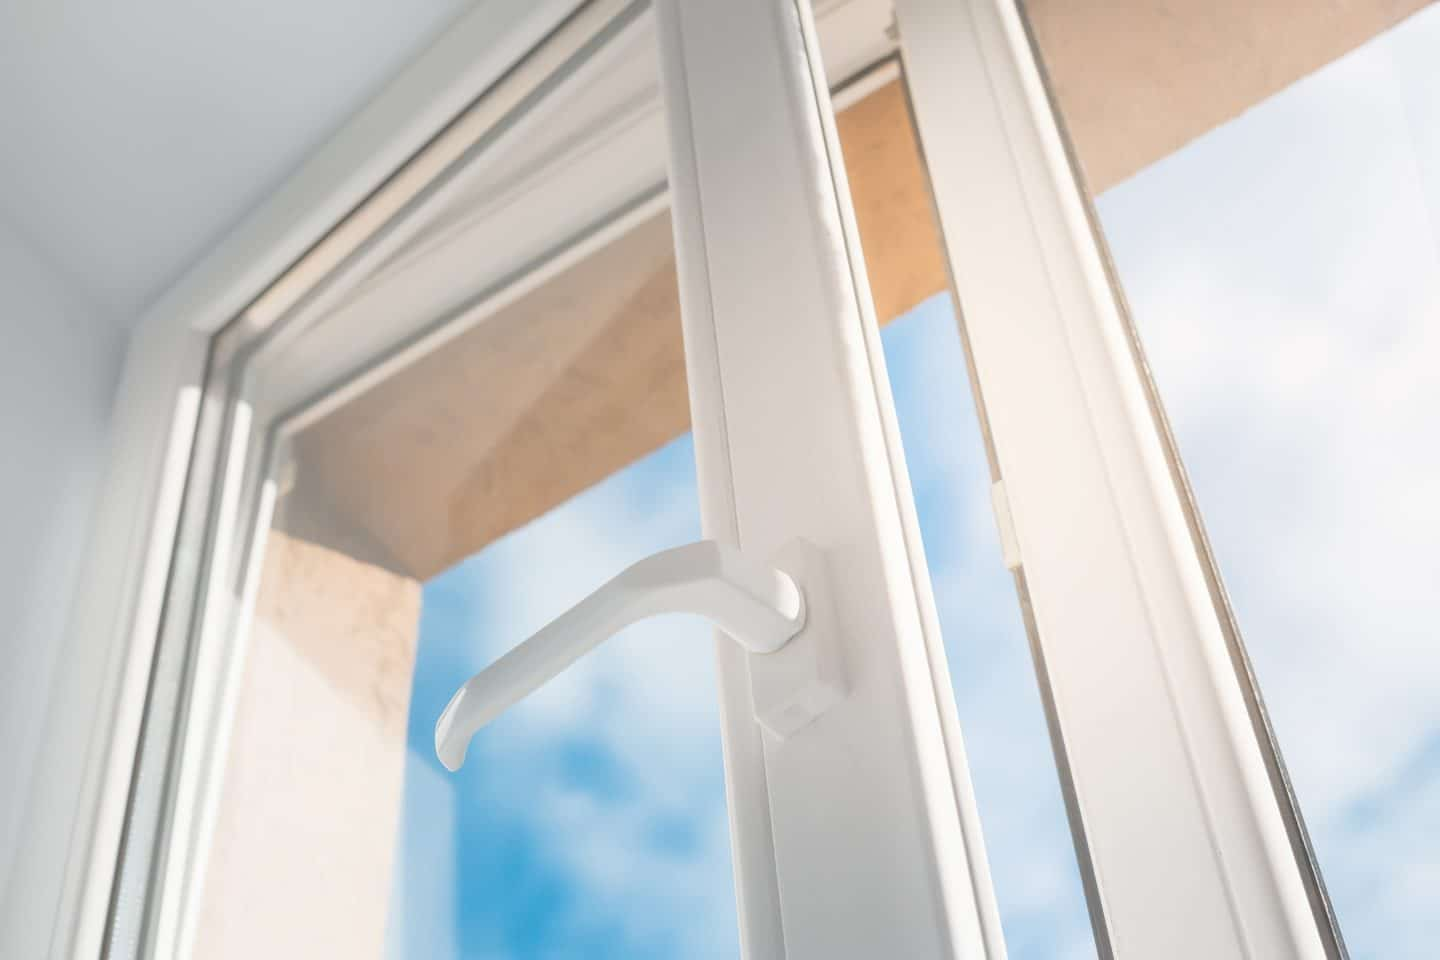 How To Paint uPVC Window Frames and Doors - Promain Resource Centre